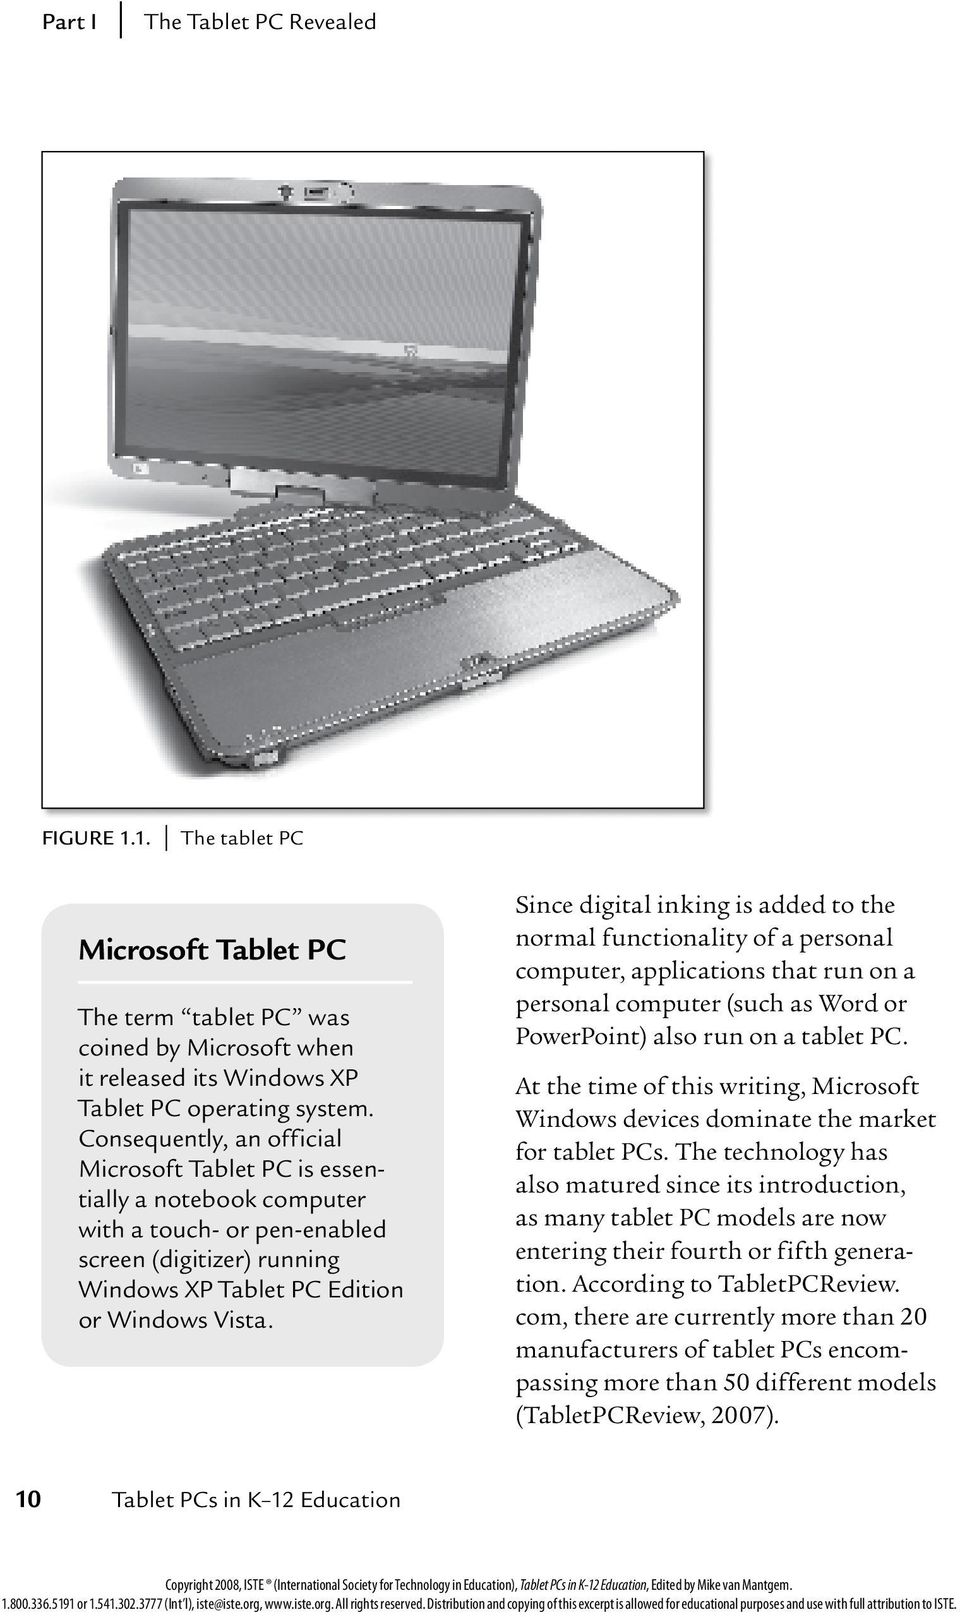 Since digital inking is added to the normal functionality of a personal computer, applications that run on a personal computer (such as Word or PowerPoint) also run on a tablet PC.